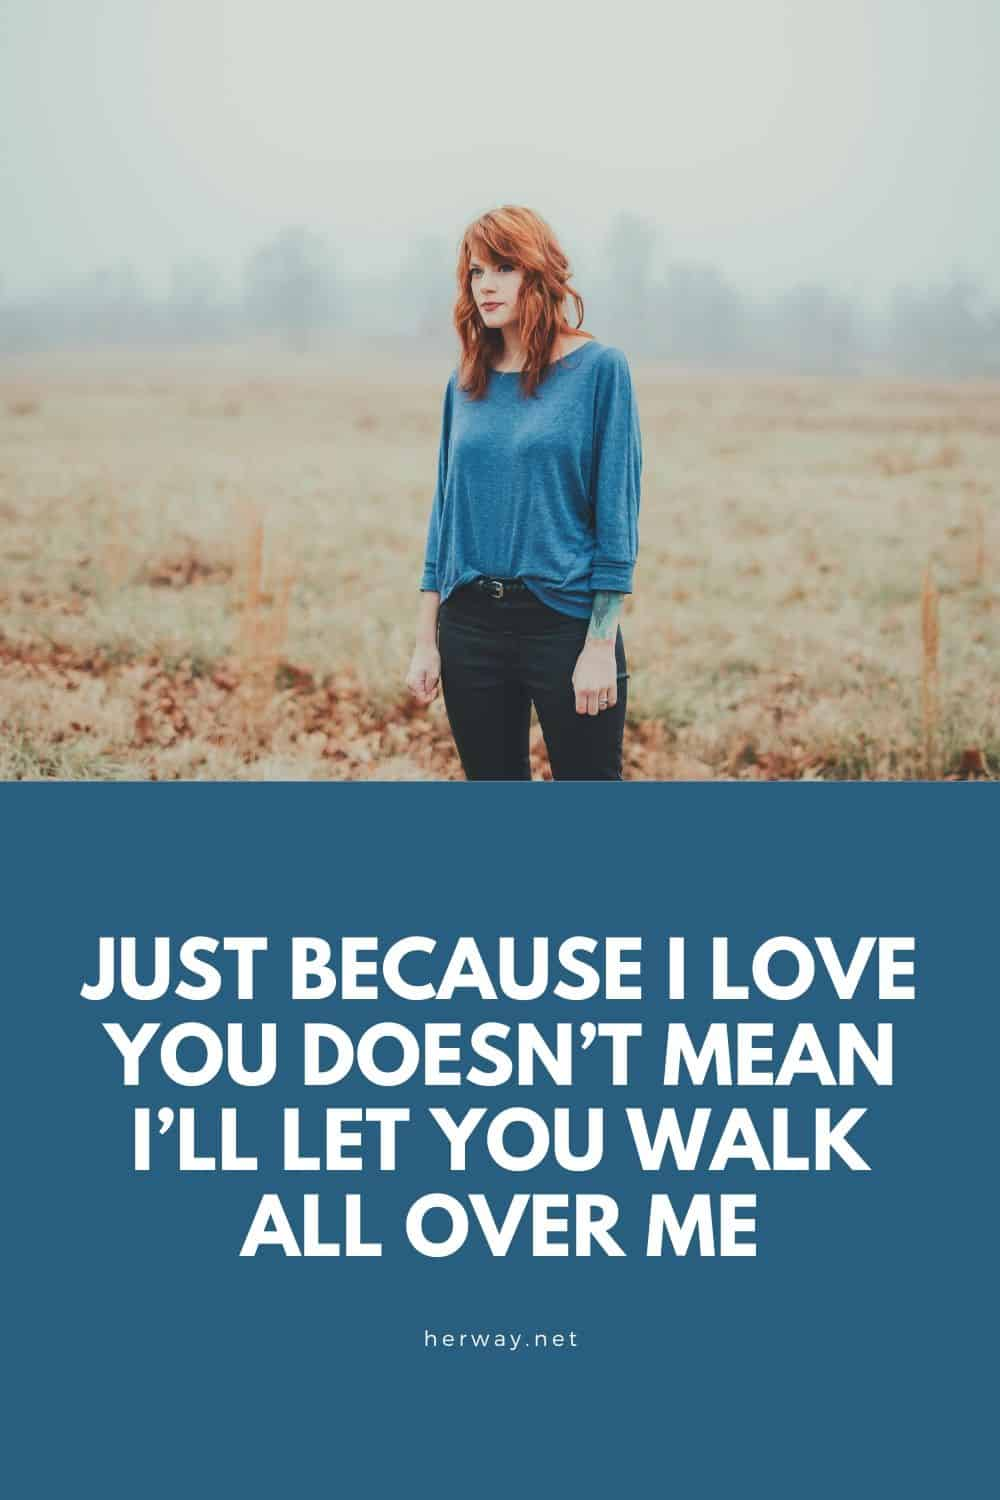 Just Because I Love You Doesn't Mean I'll Let You Walk All Over Me